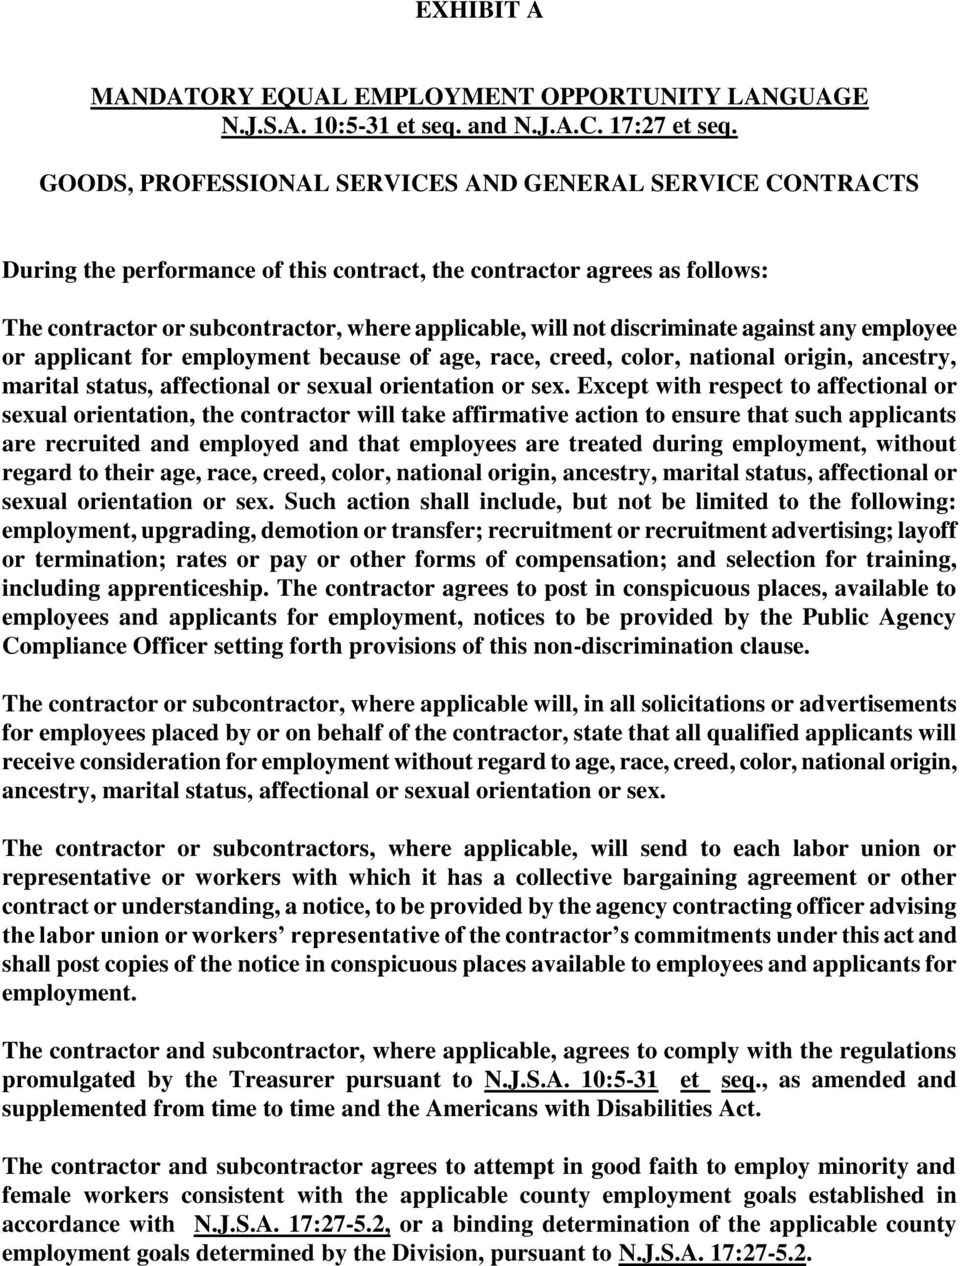 discriminate against any employee or applicant for employment because of age, race, creed, color, national origin, ancestry, marital status, affectional or sexual orientation or sex.